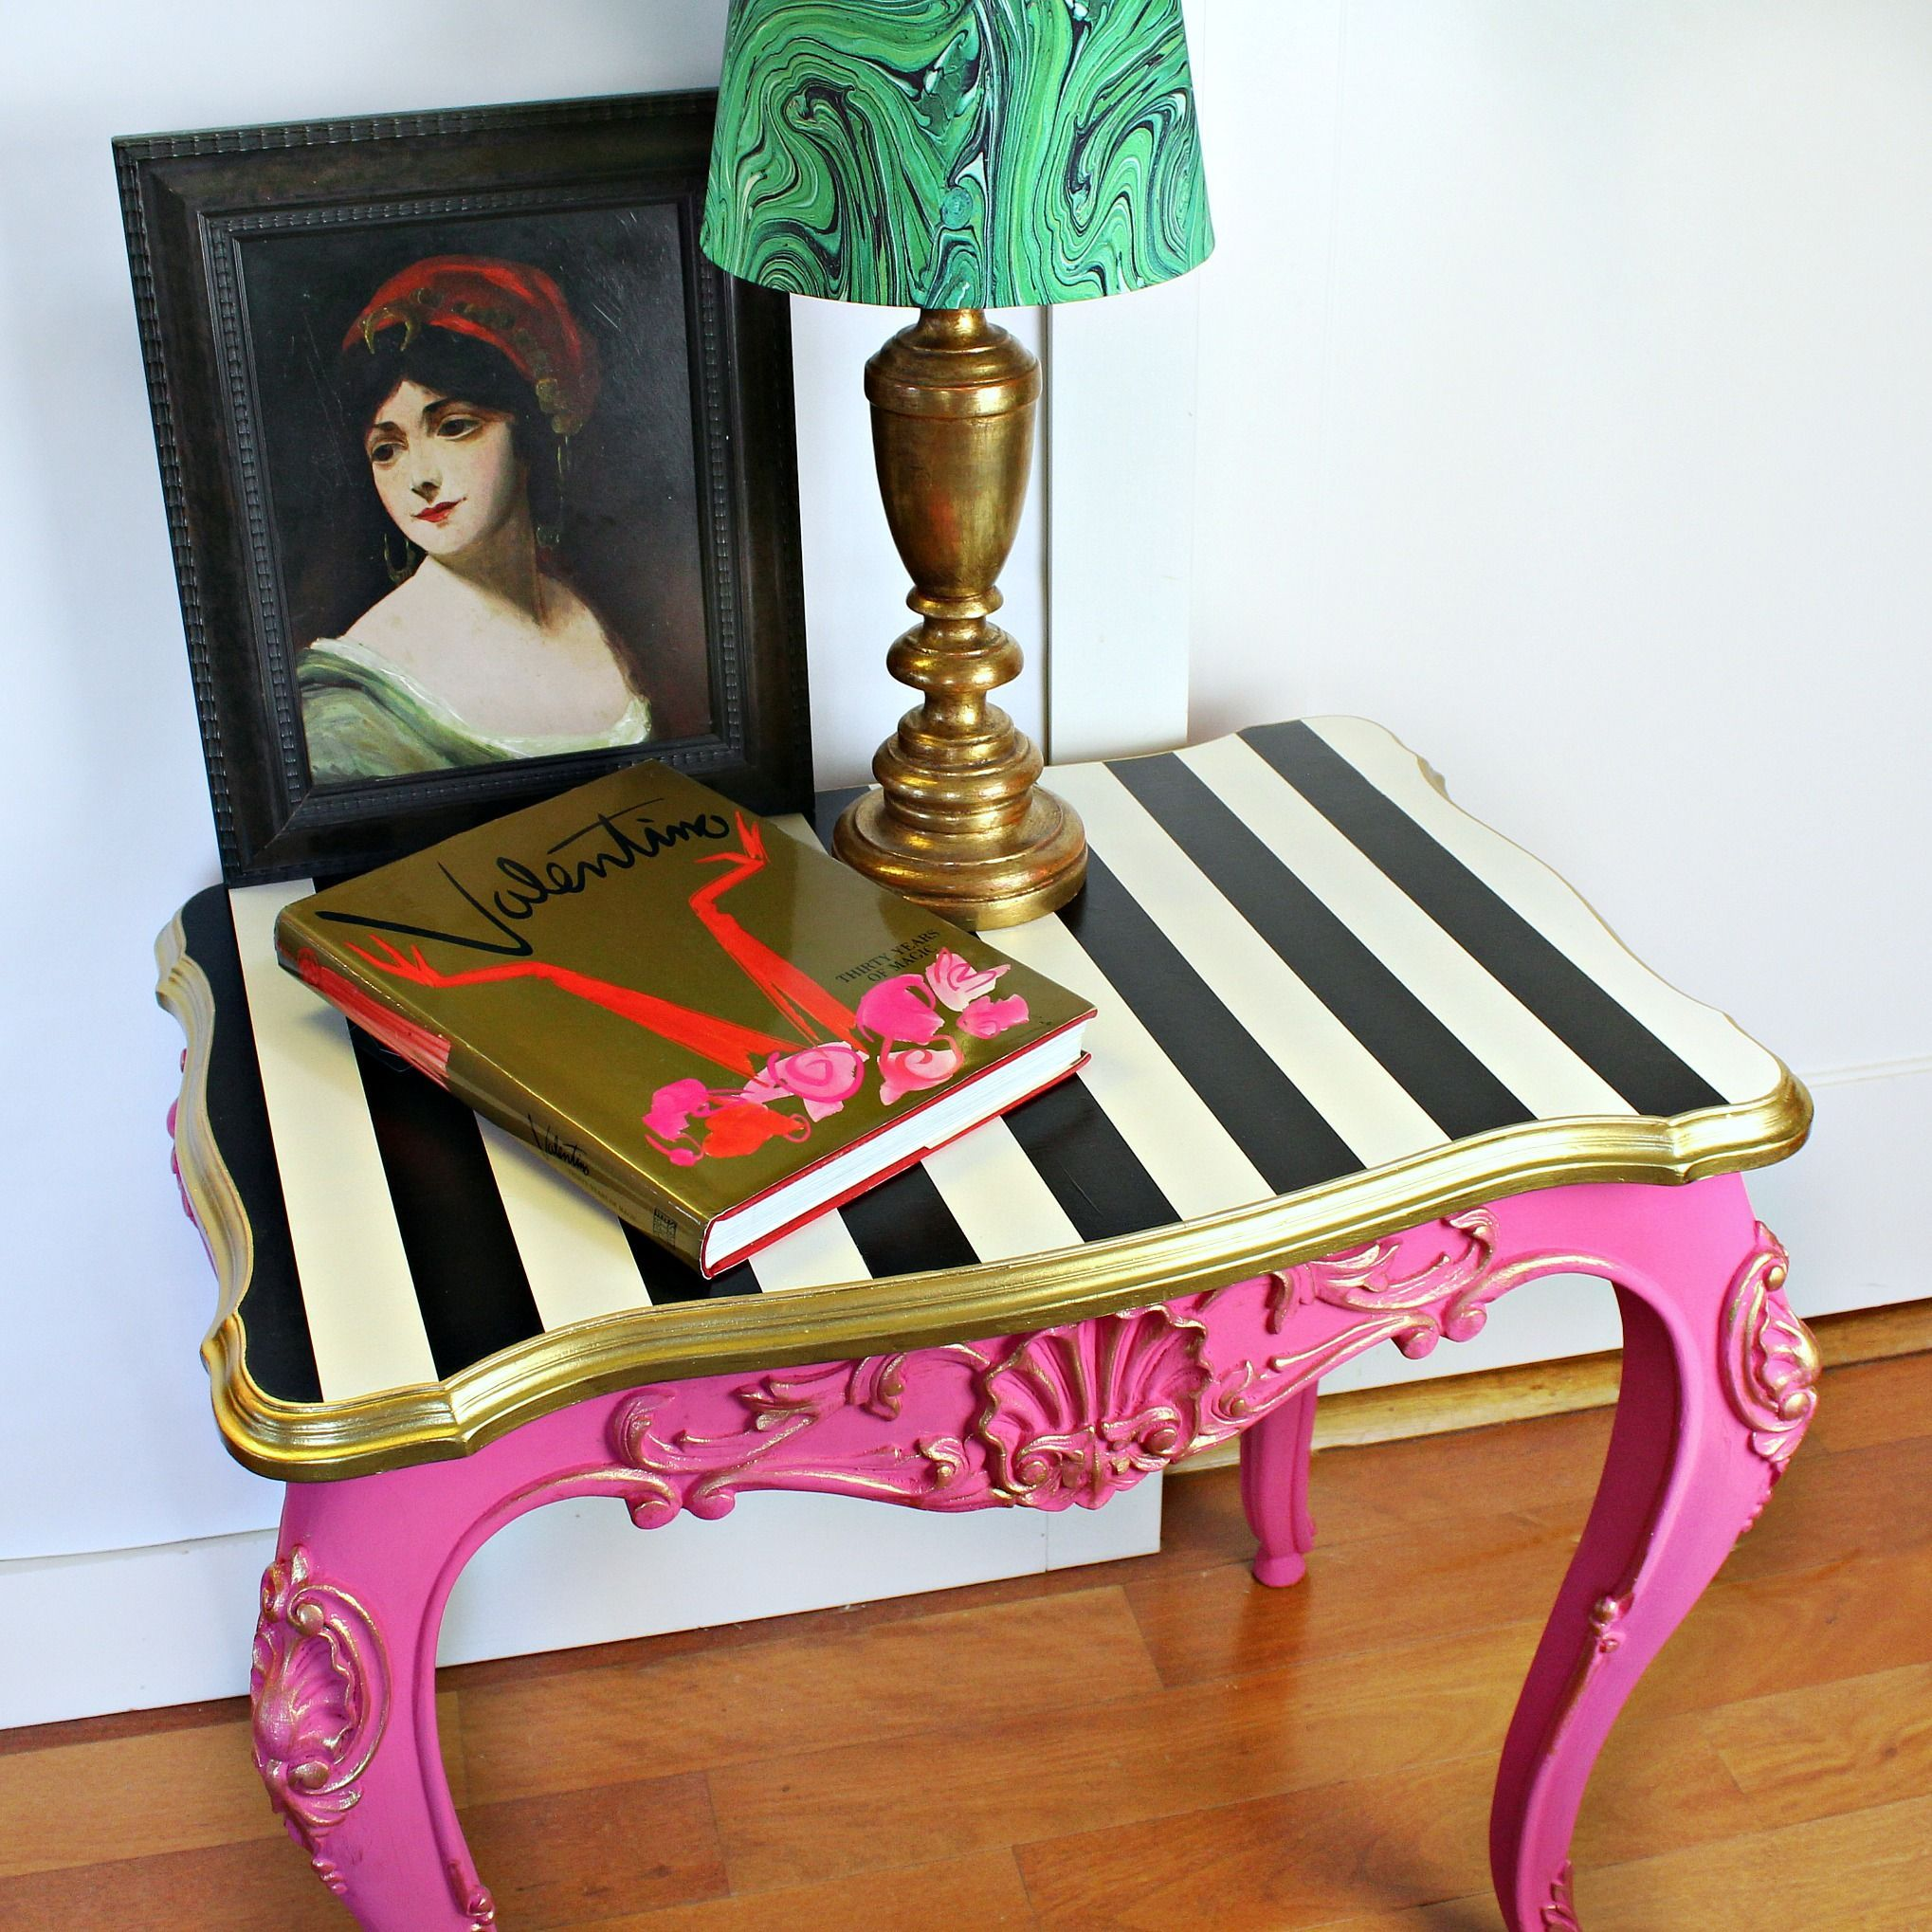 Thrift store table makeover! #DecoArt #OutdoorLiving #MarieAntoinette #OldChair